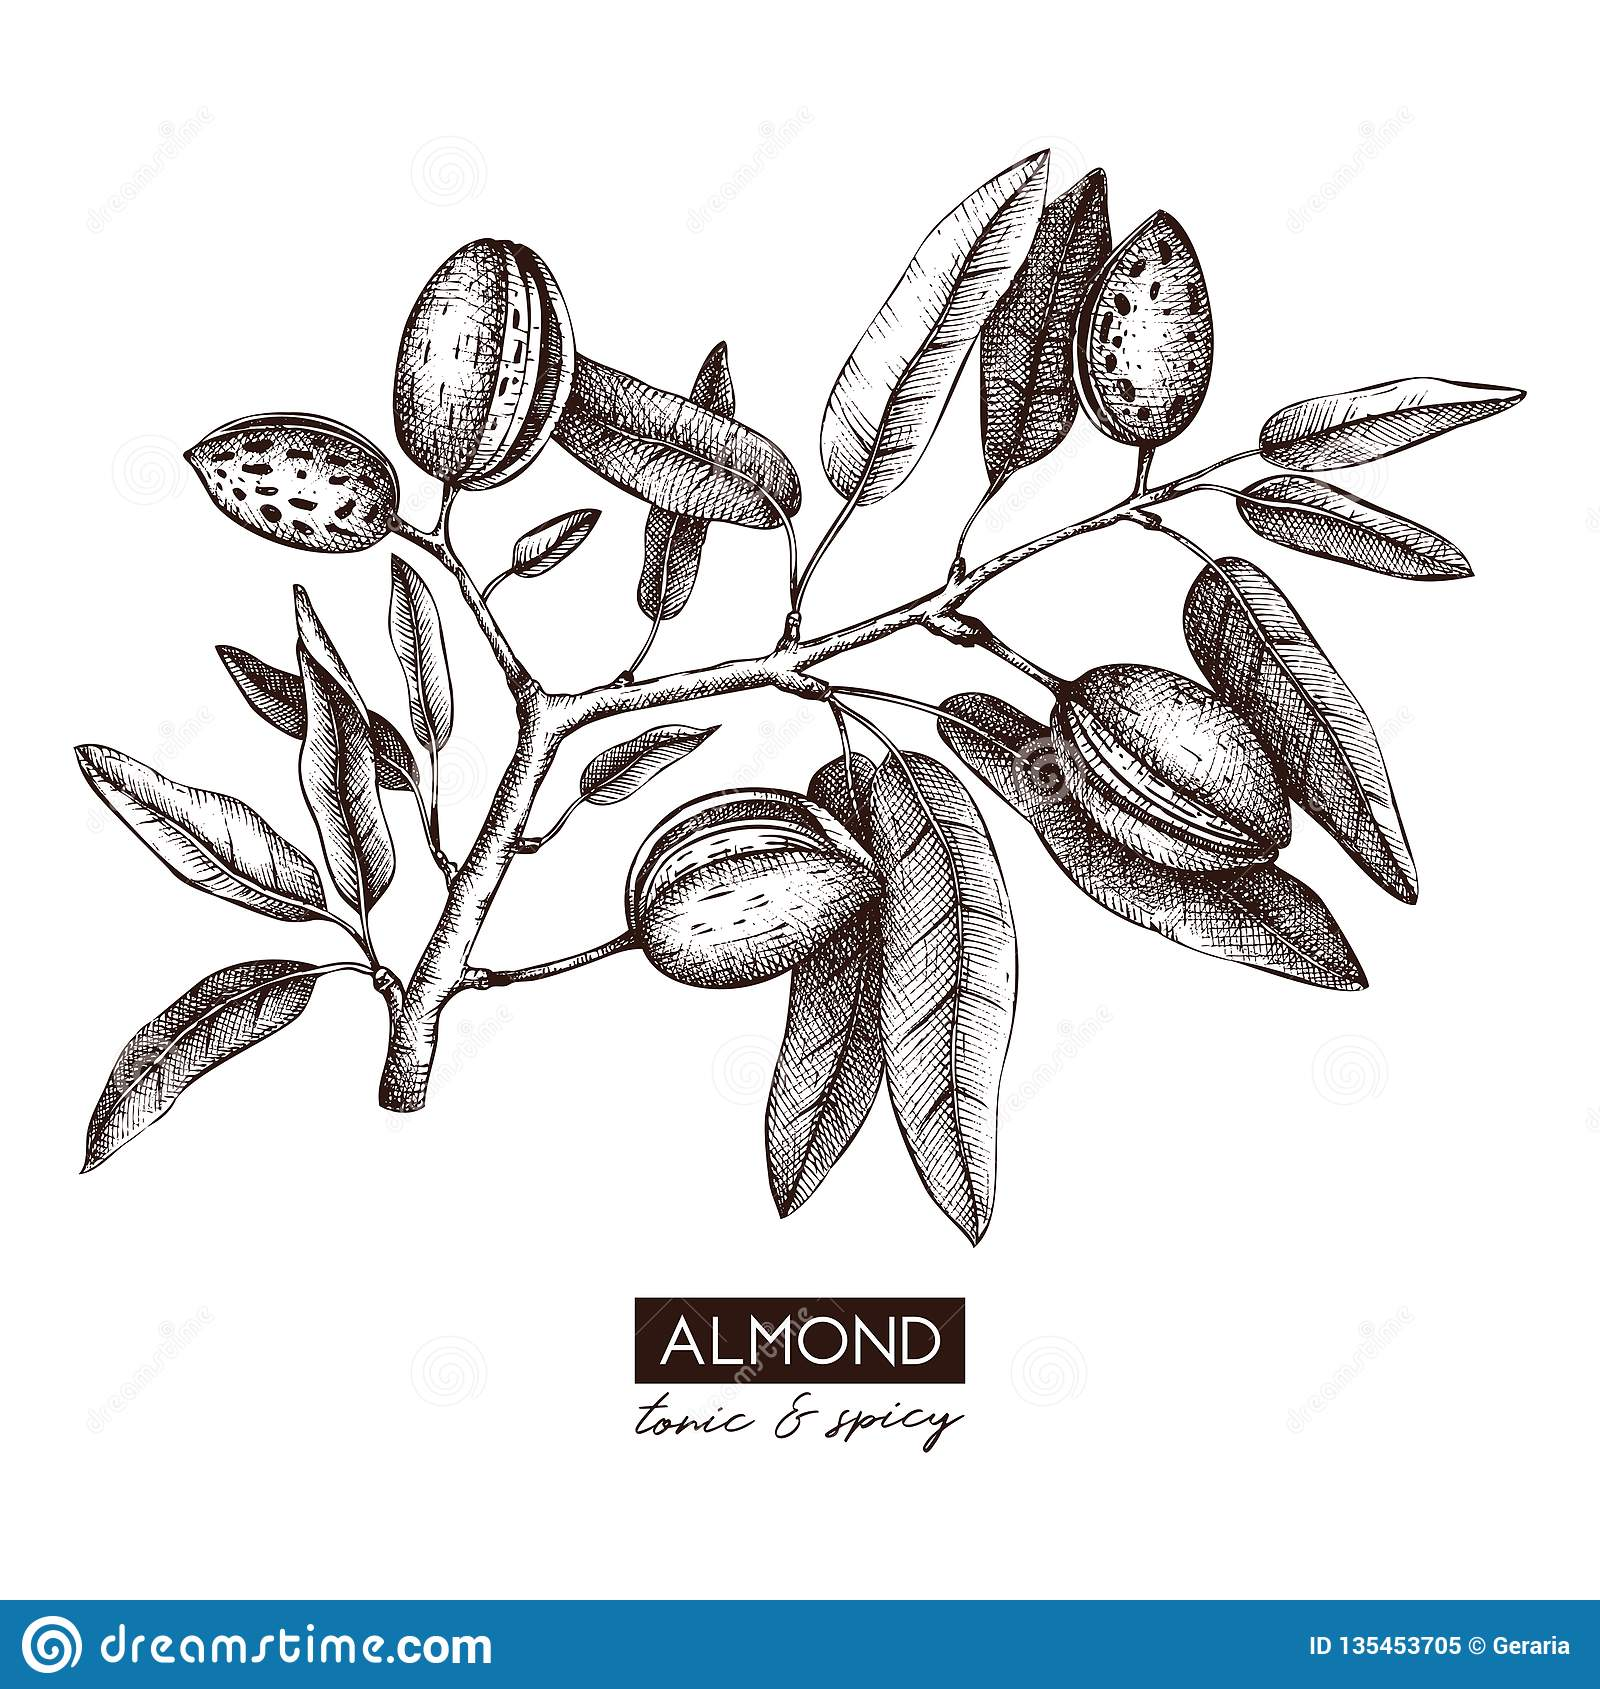 Almond Tree Stock Illustrations 1 741 Almond Tree Stock Illustrations Vectors Clipart Dreamstime